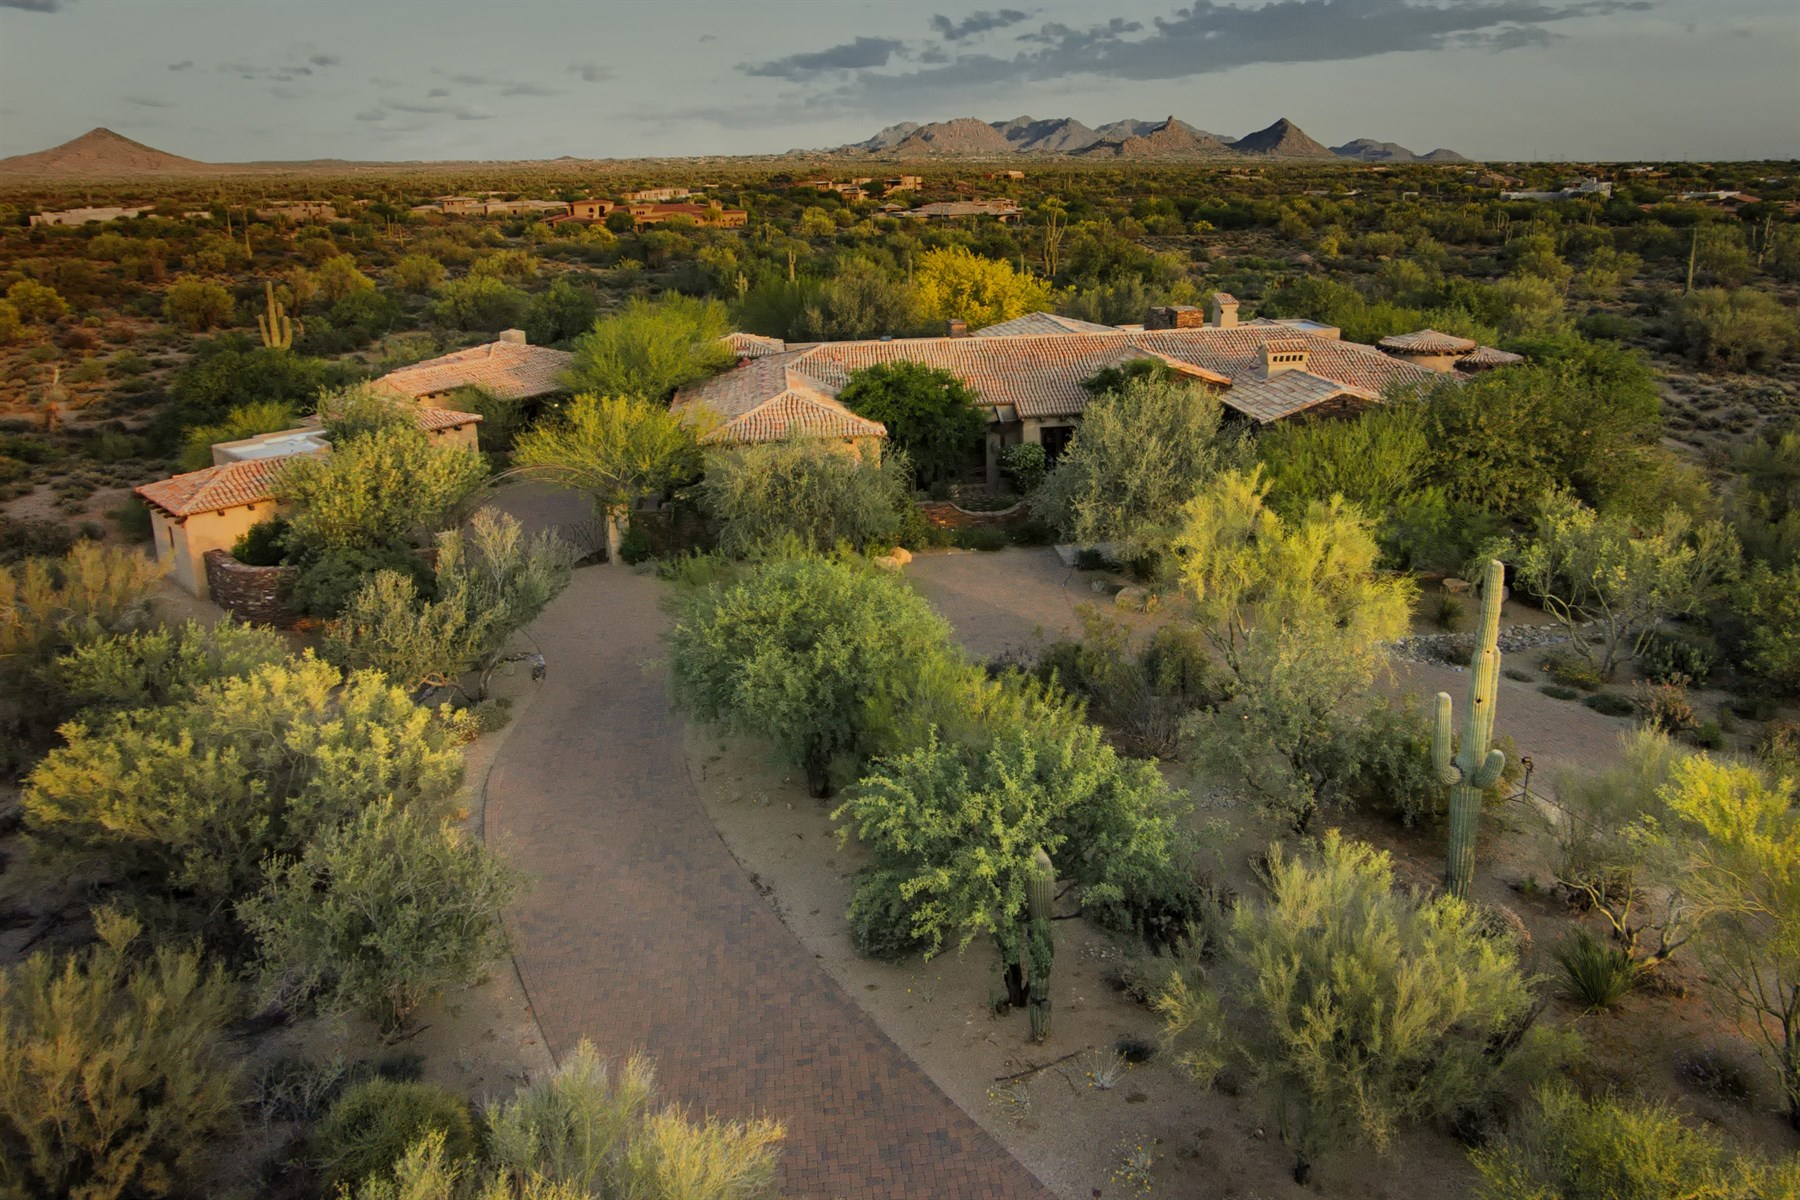 Maison unifamiliale pour l Vente à Timeless and elegant family estate on three acres in Whisper Rock Estates. 8525 E WHISPER ROCK TRL Scottsdale, Arizona, 85266 États-Unis